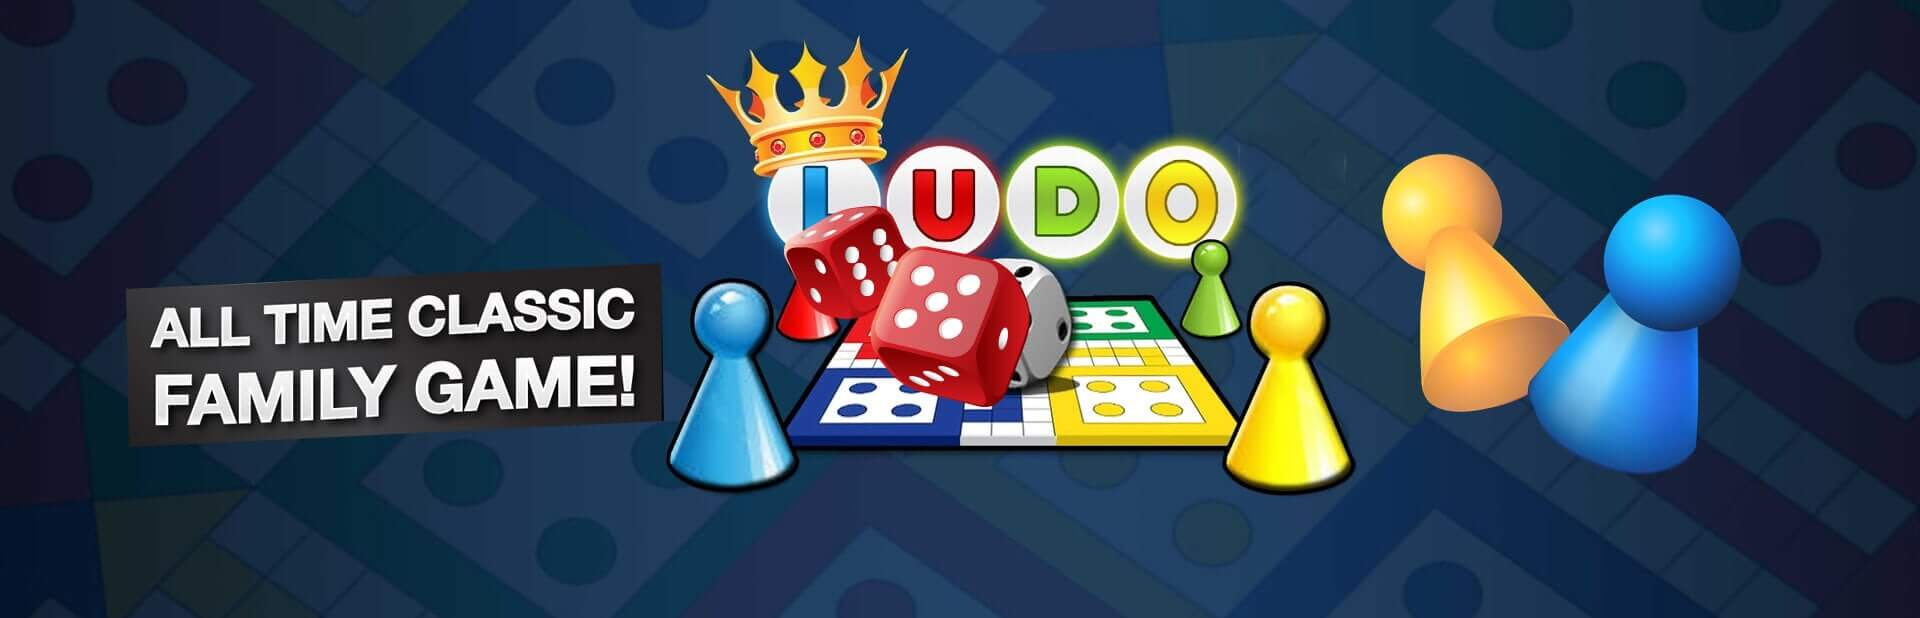 Best Ludo Game Website & App Development Company in India-VerveLogic